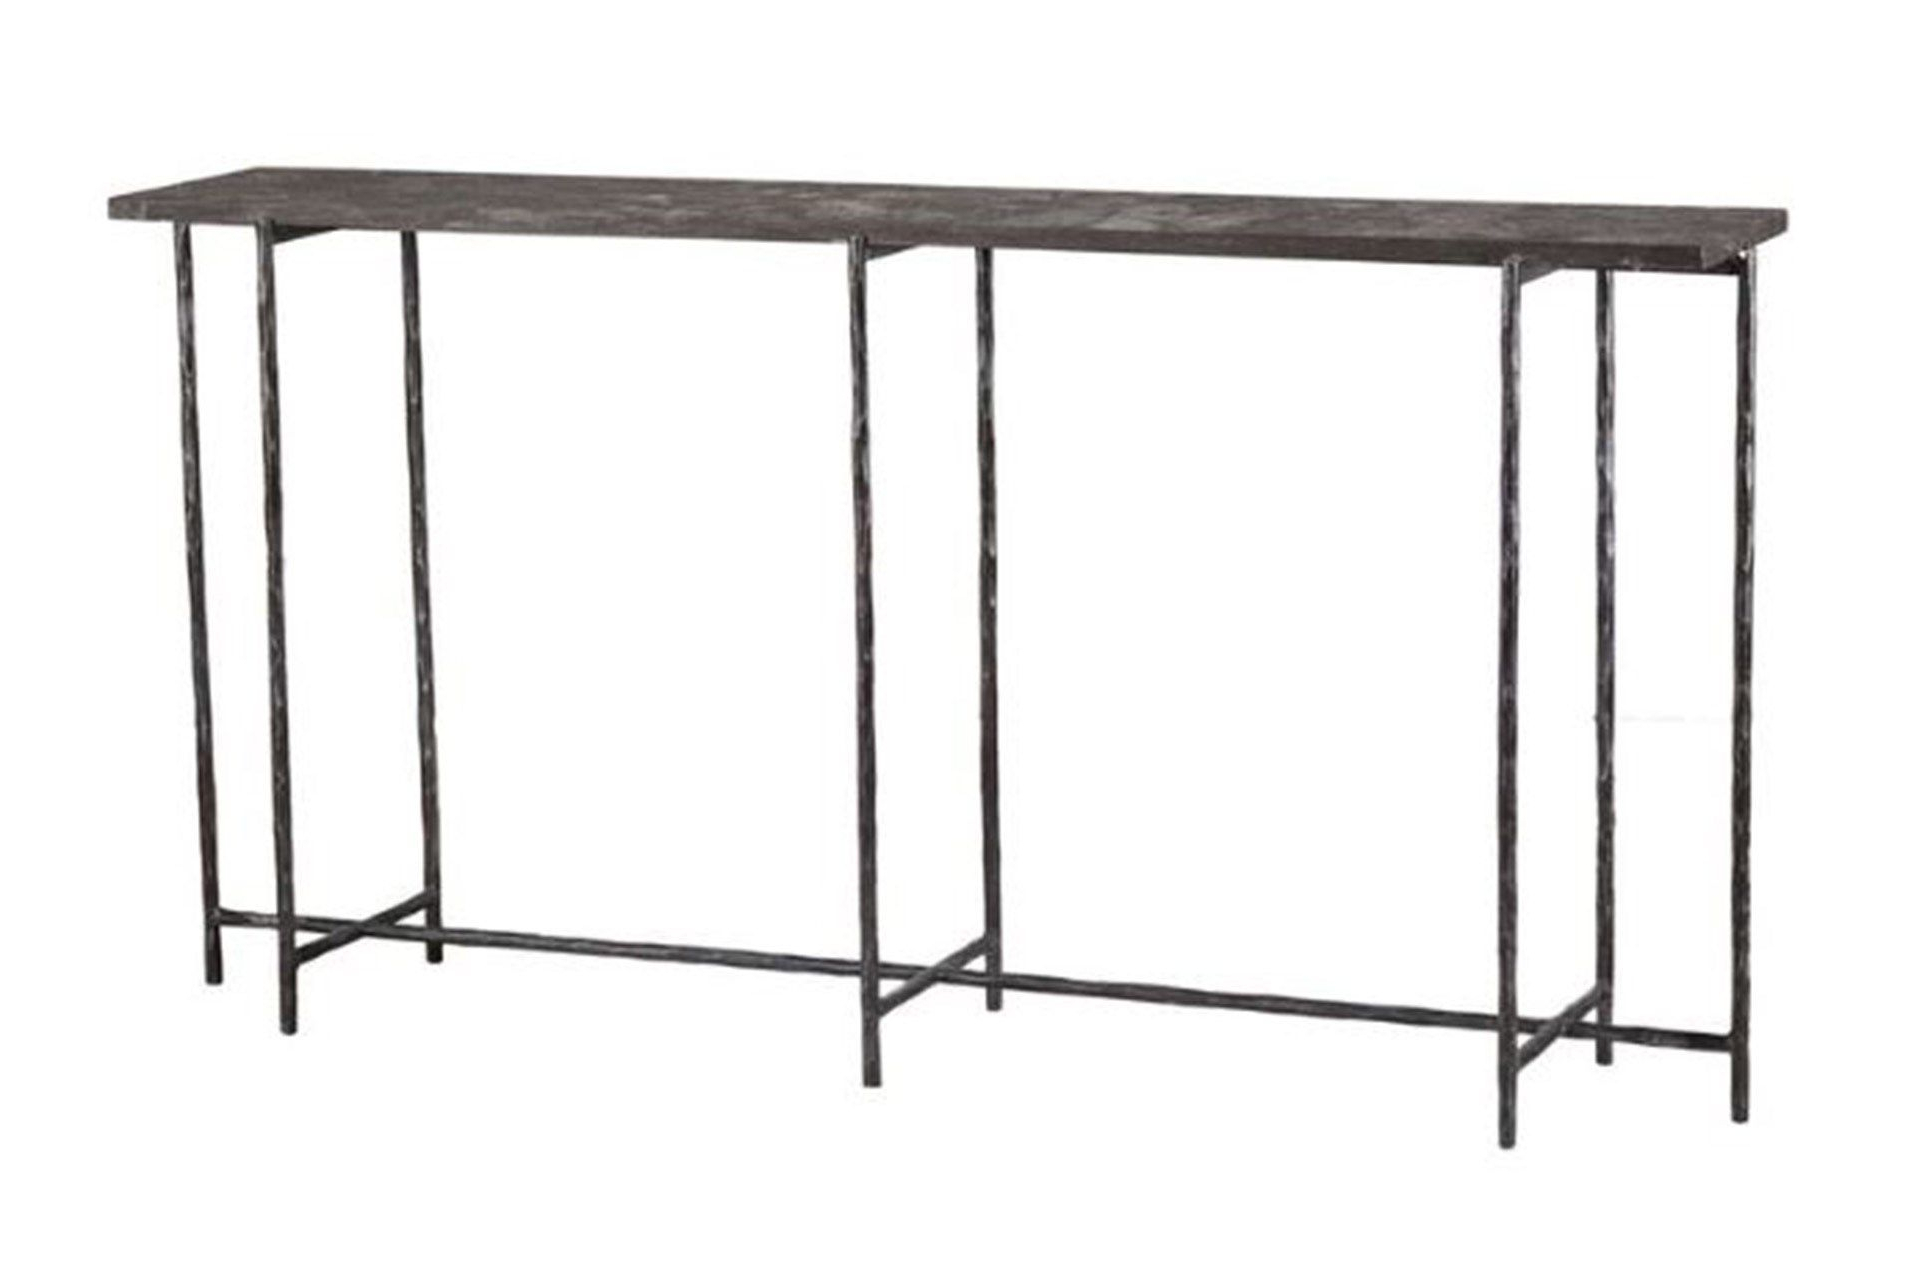 Cast Iron 60 Inch Console Table W/ Stone In 2018 | Tahoe – Living Intended For Silviano 60 Inch Iron Console Tables (Gallery 2 of 20)